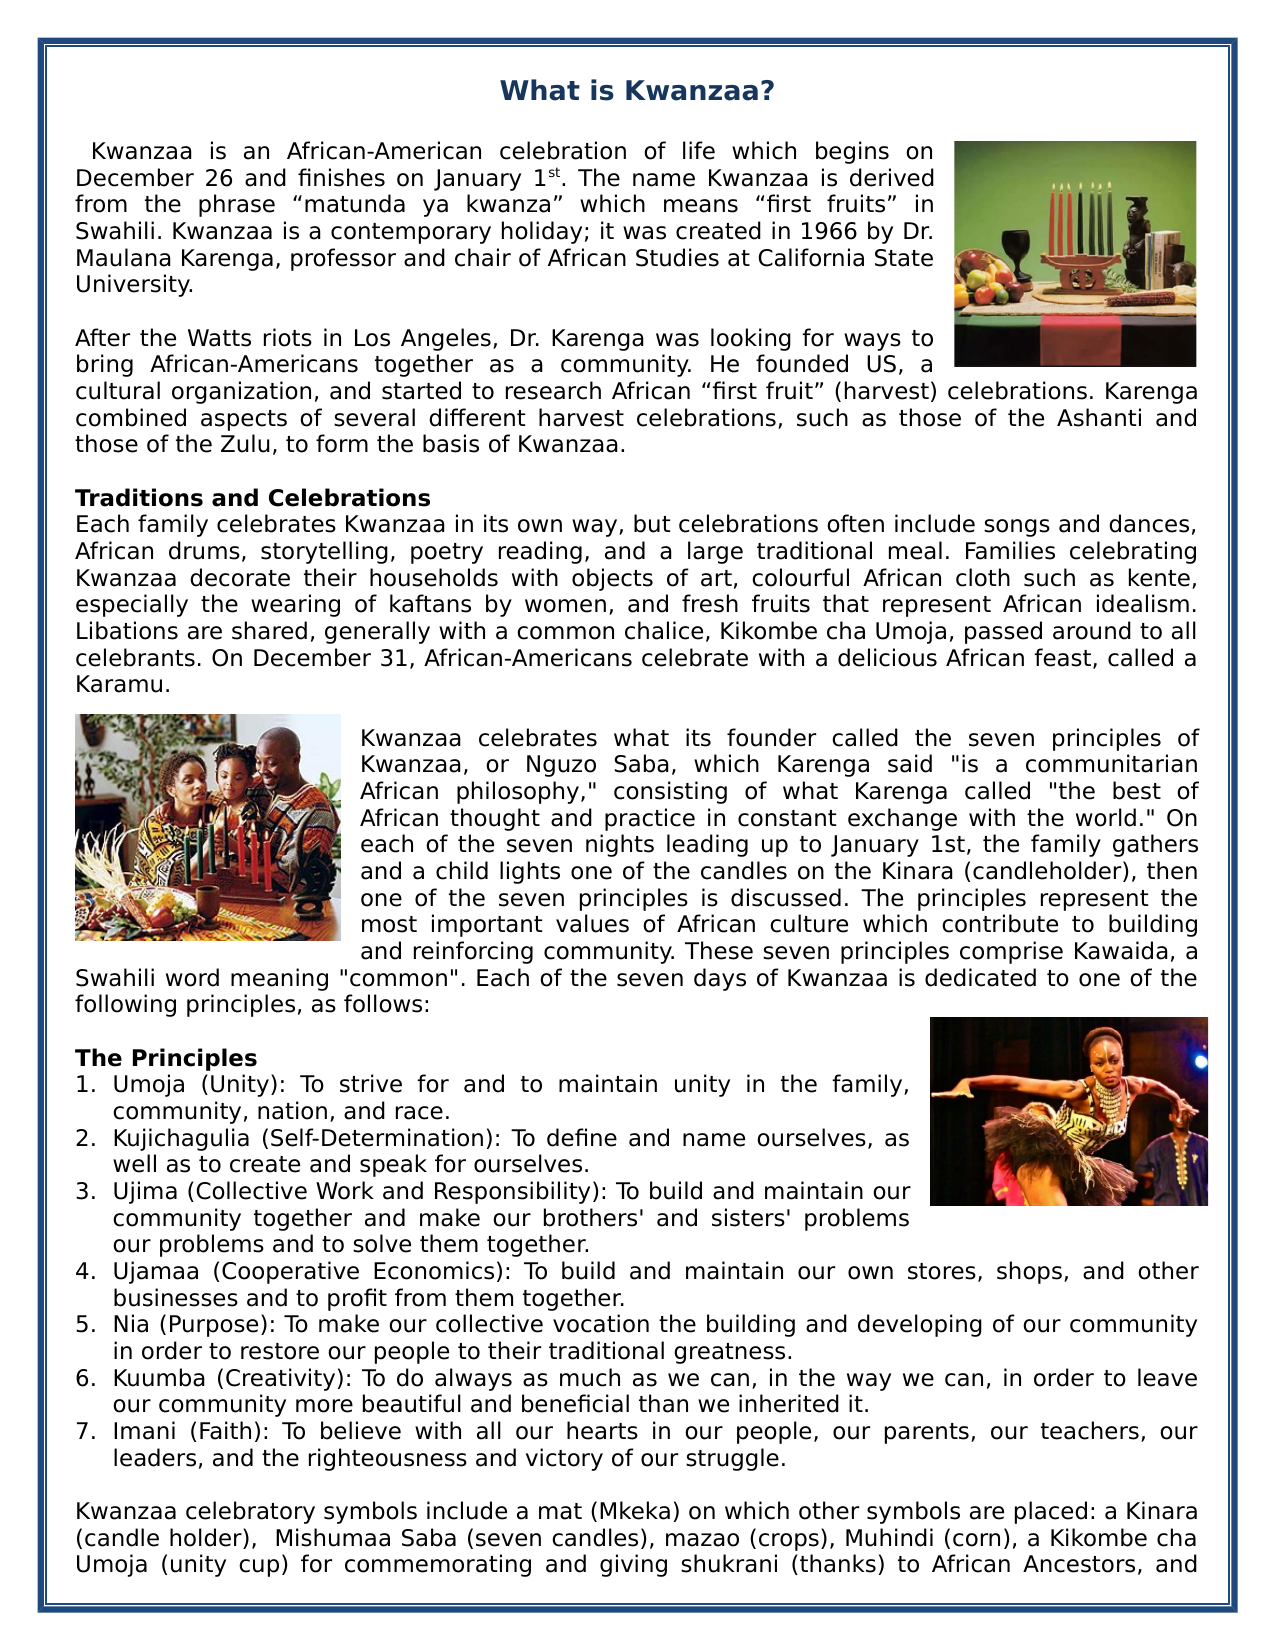 What Is Kwanzaa Reading Comprehension Worksheet Teaching Resources Reading Comprehension Worksheets Reading Comprehension Comprehension Worksheets [ 1651 x 1275 Pixel ]